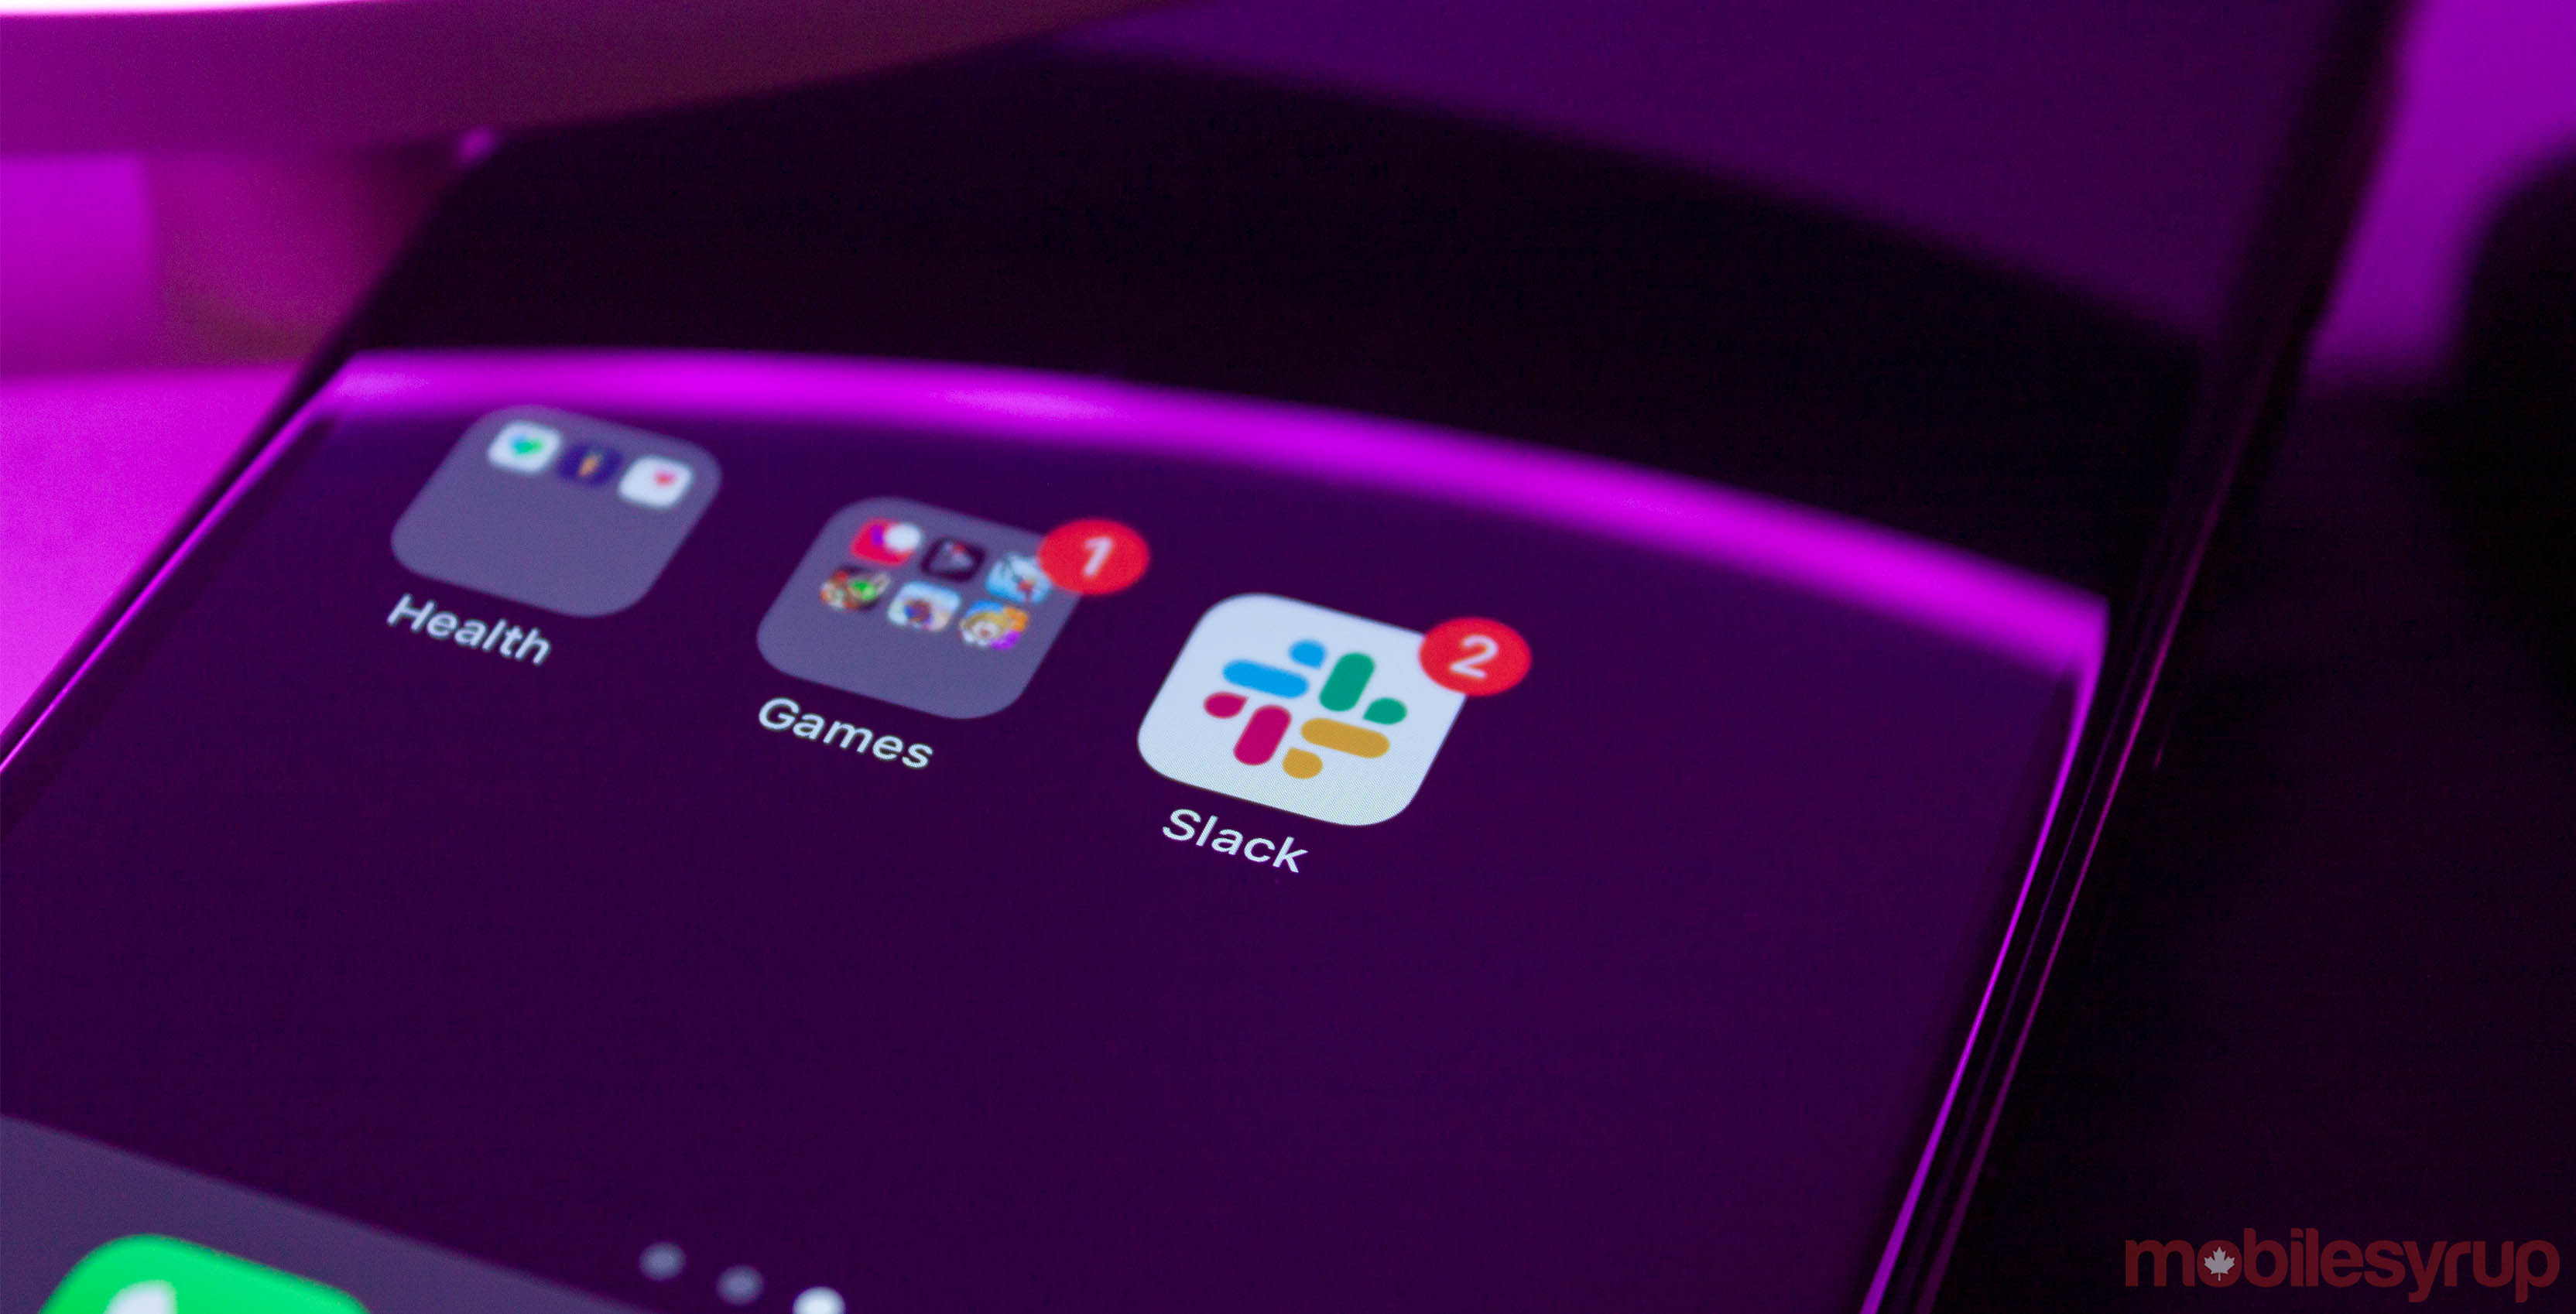 Slack makes signing in on Android easier with support for Smart Lock